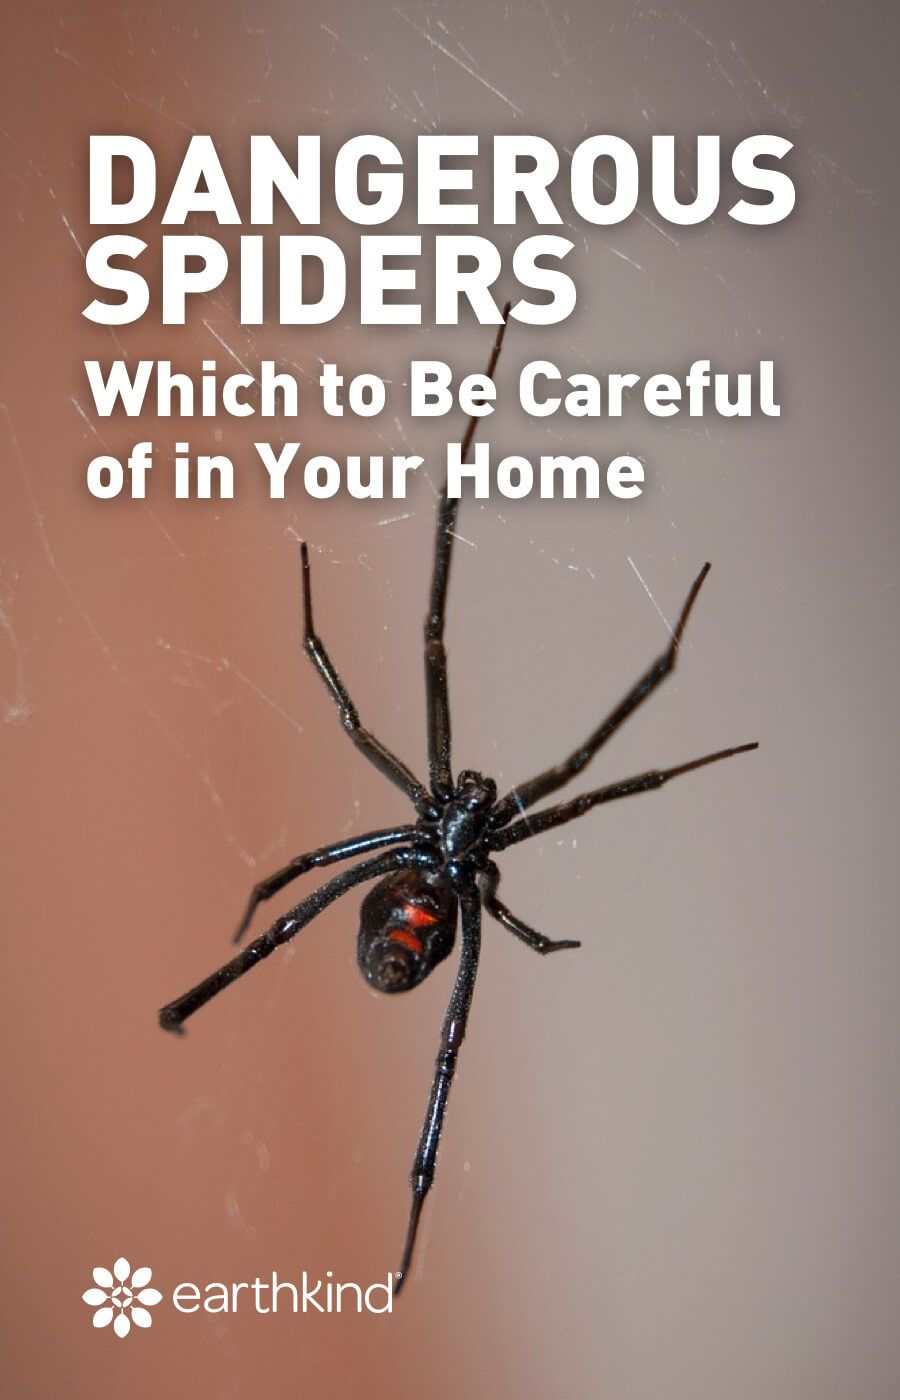 Dangerous spiders which to be careful of in your home